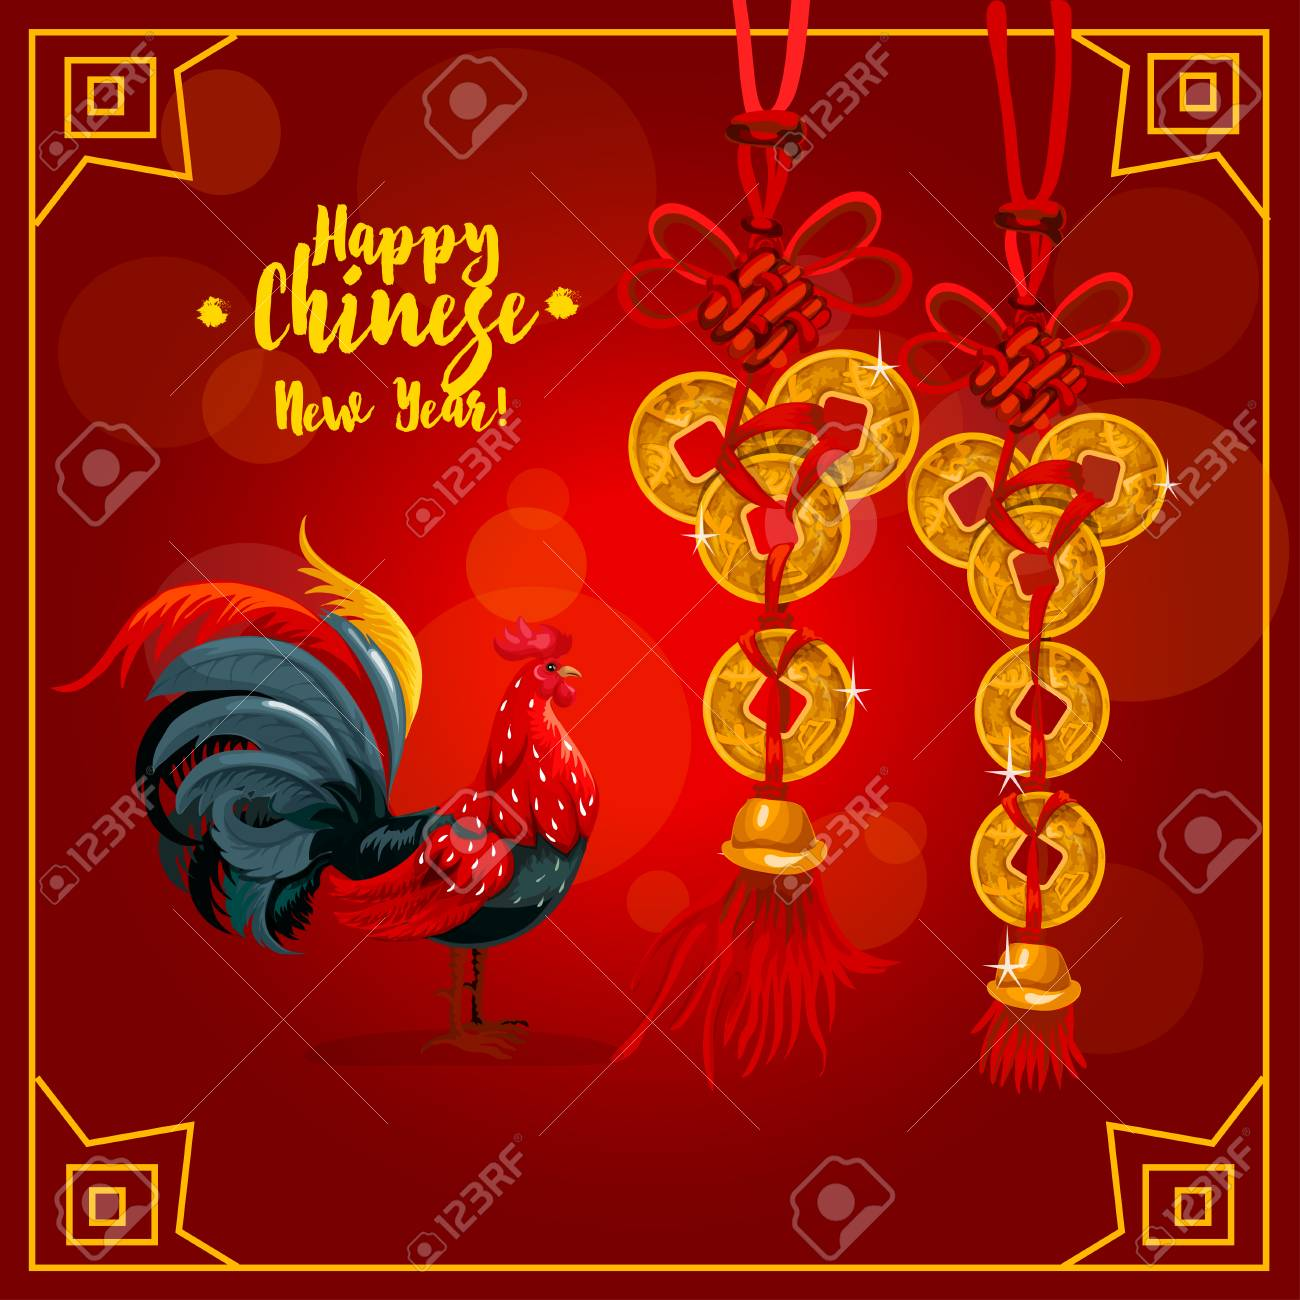 Chinese New Year Greeting Card Chinese Zodiac Rooster And Golden